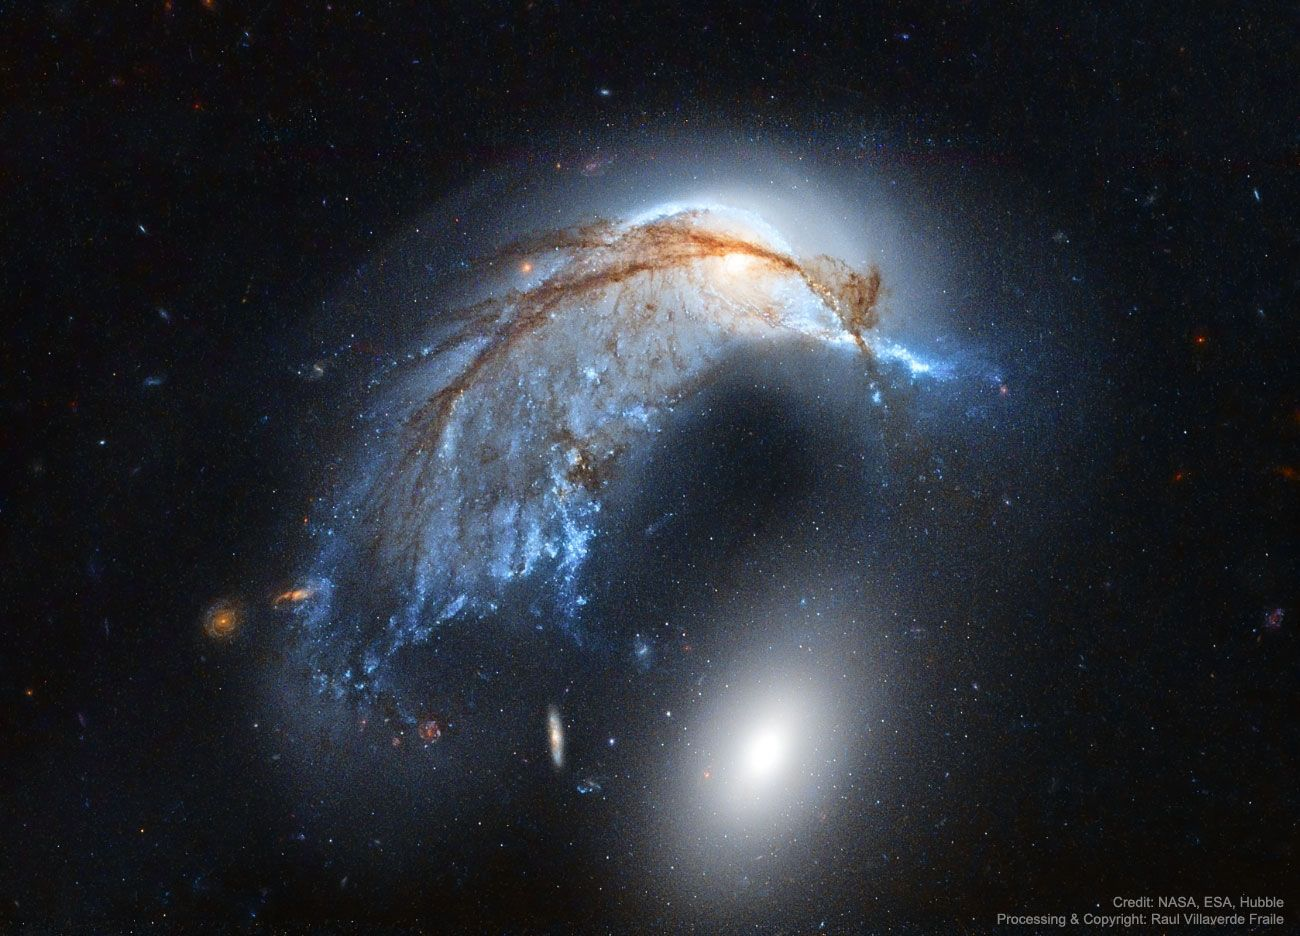 Dolphin Galaxy From Apod Hubble Hubble Images Galaxy Ngc Astronomy